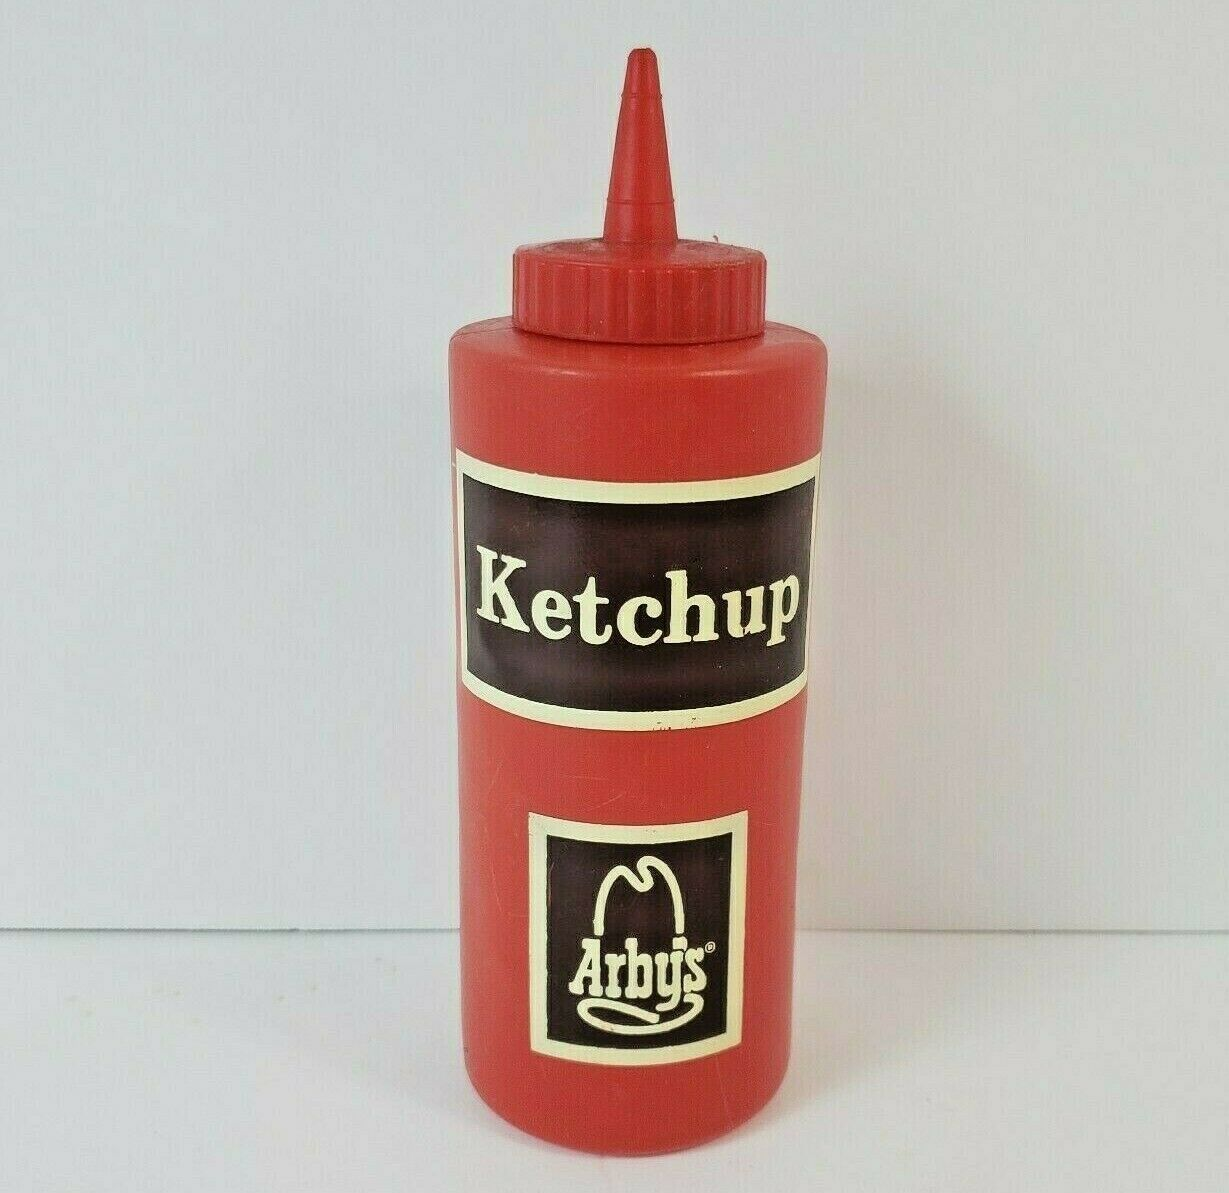 "Vintage Arby's Ketchup Squeeze Bottle - 1970's - Advertising - 7.5"" Tall"